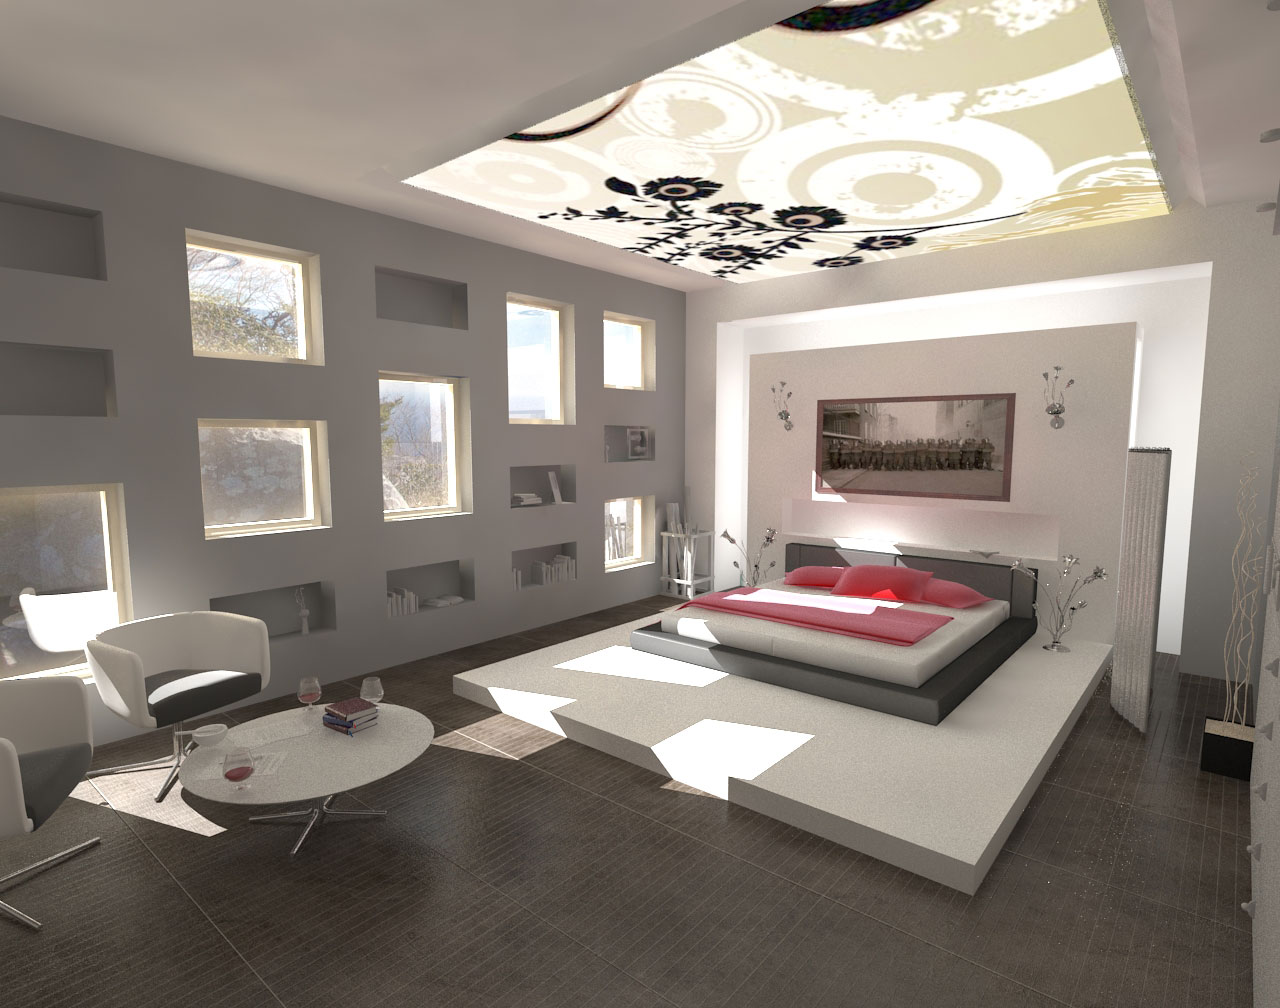 Contemporary bedroom styles modern architecture concept for New style bedroom design